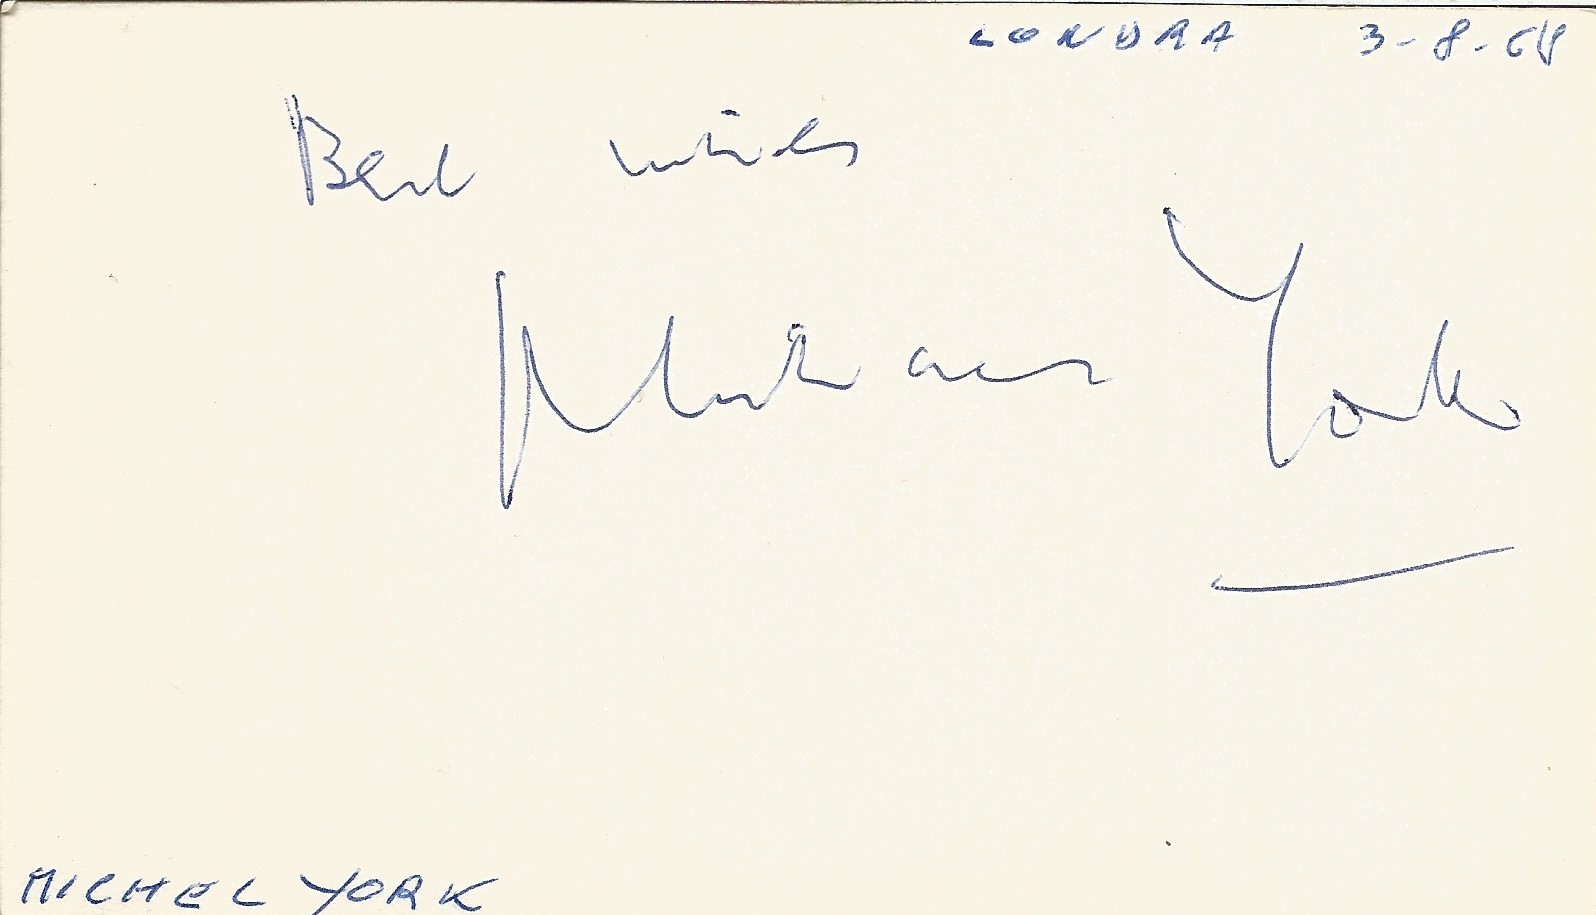 Michael York signed to clear back of vintage Tiberio Restaurant 4 x 3 inch contact card. From